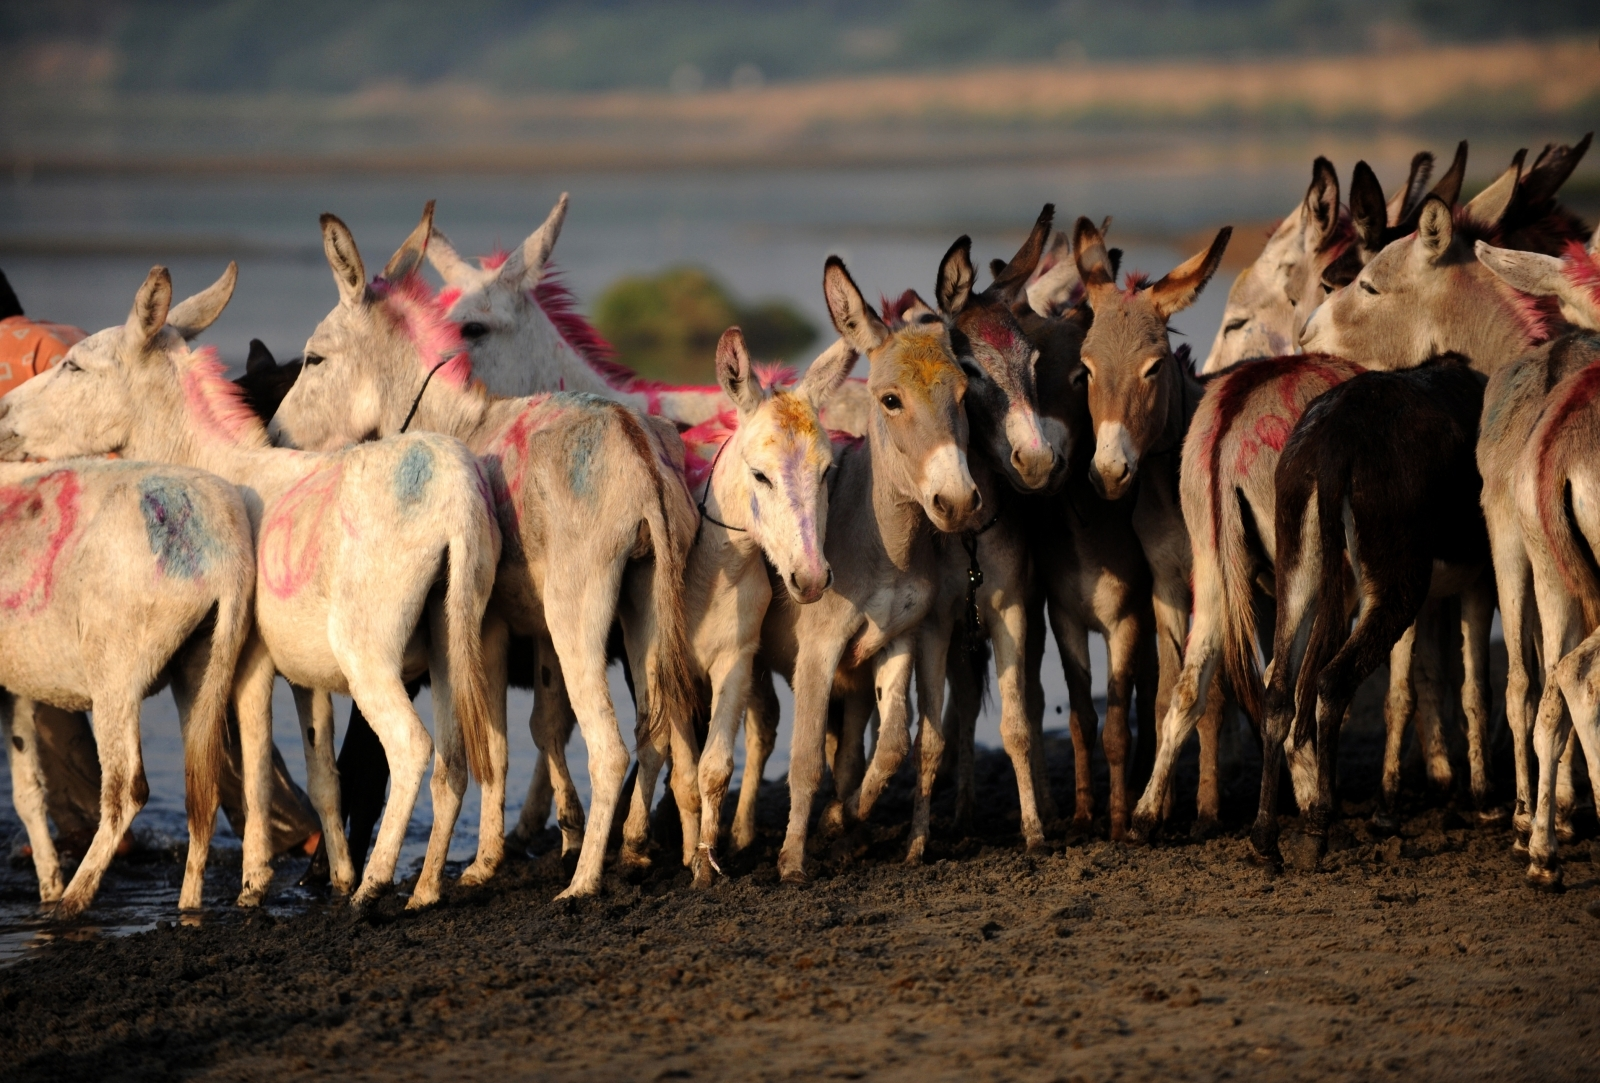 Indian donkeys